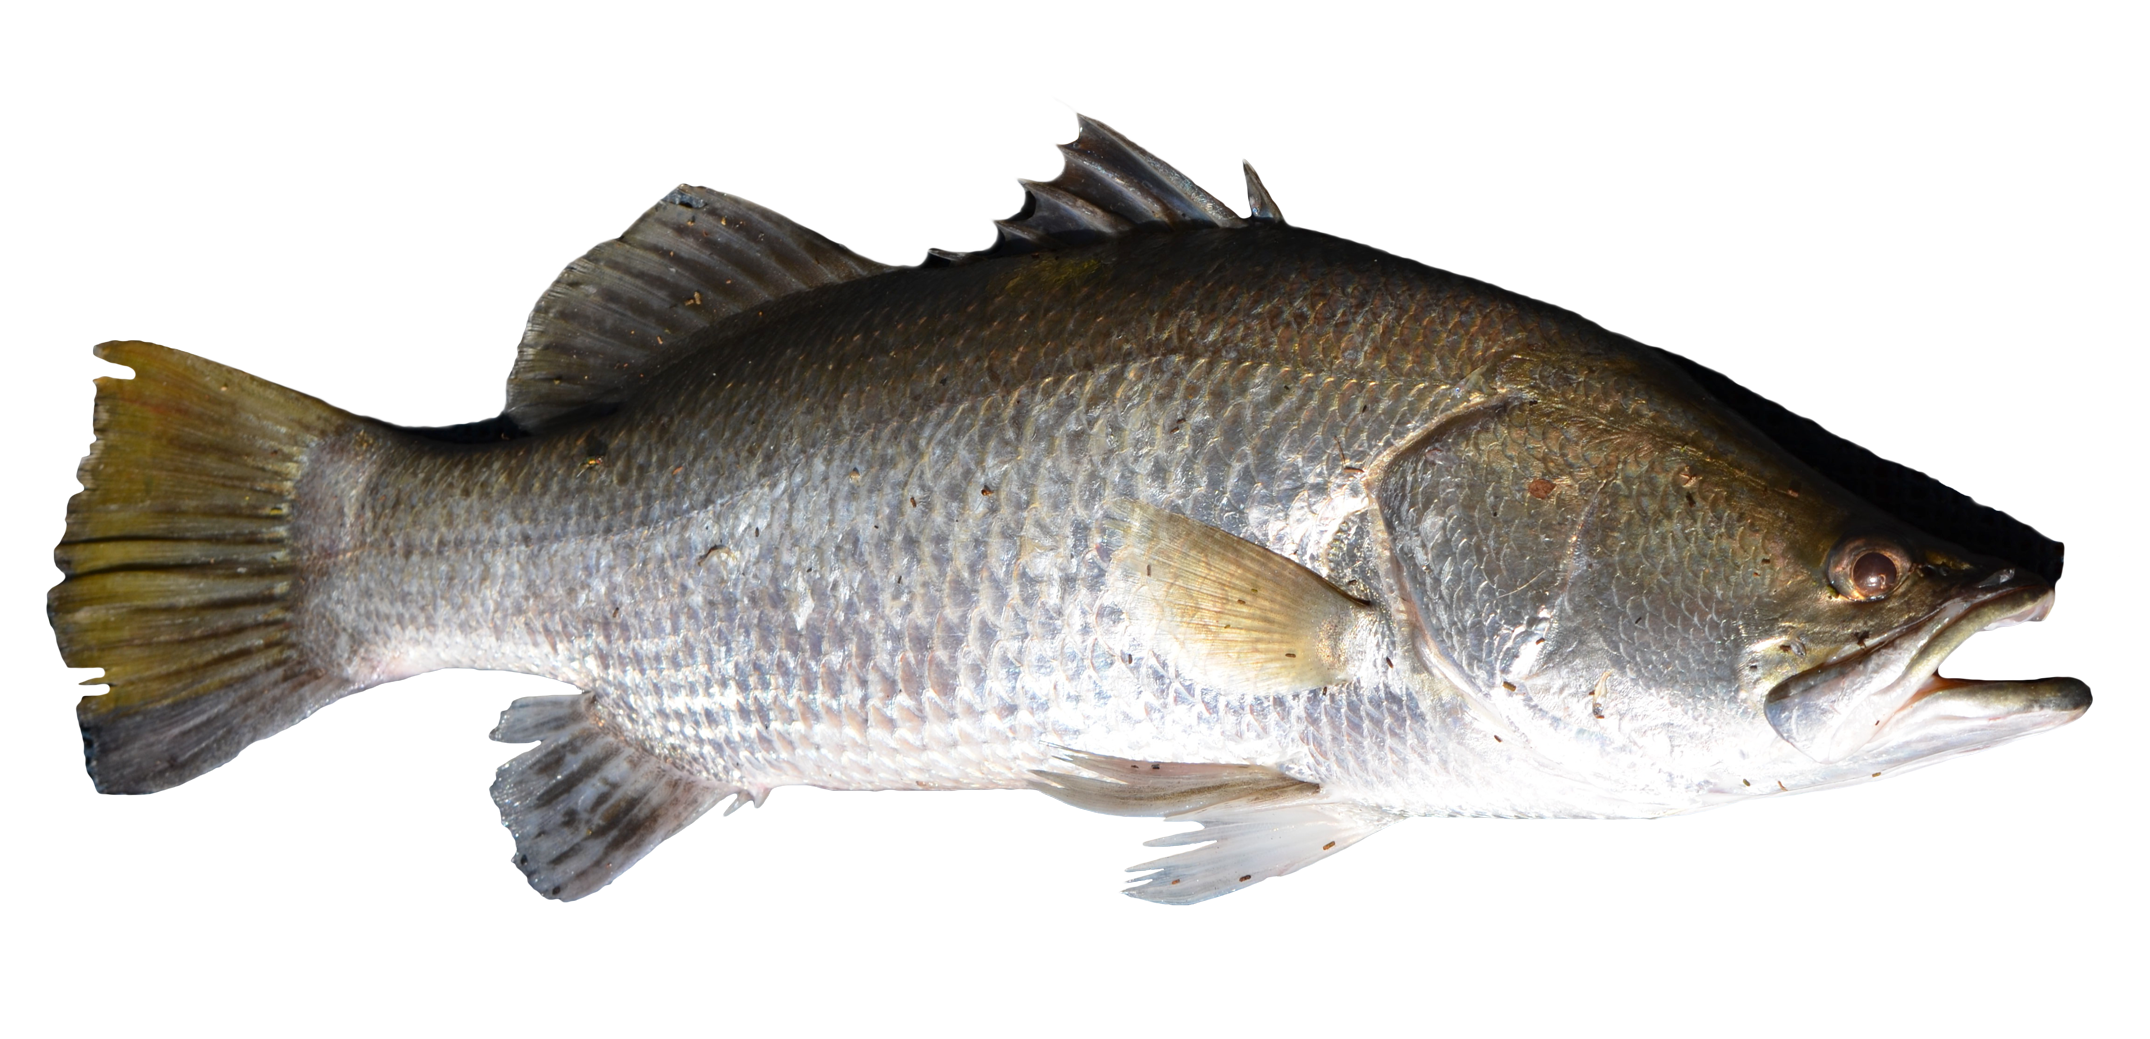 Bass fish clipart transparent background royalty free library Fish PNG Image - PurePNG | Free transparent CC0 PNG Image Library royalty free library